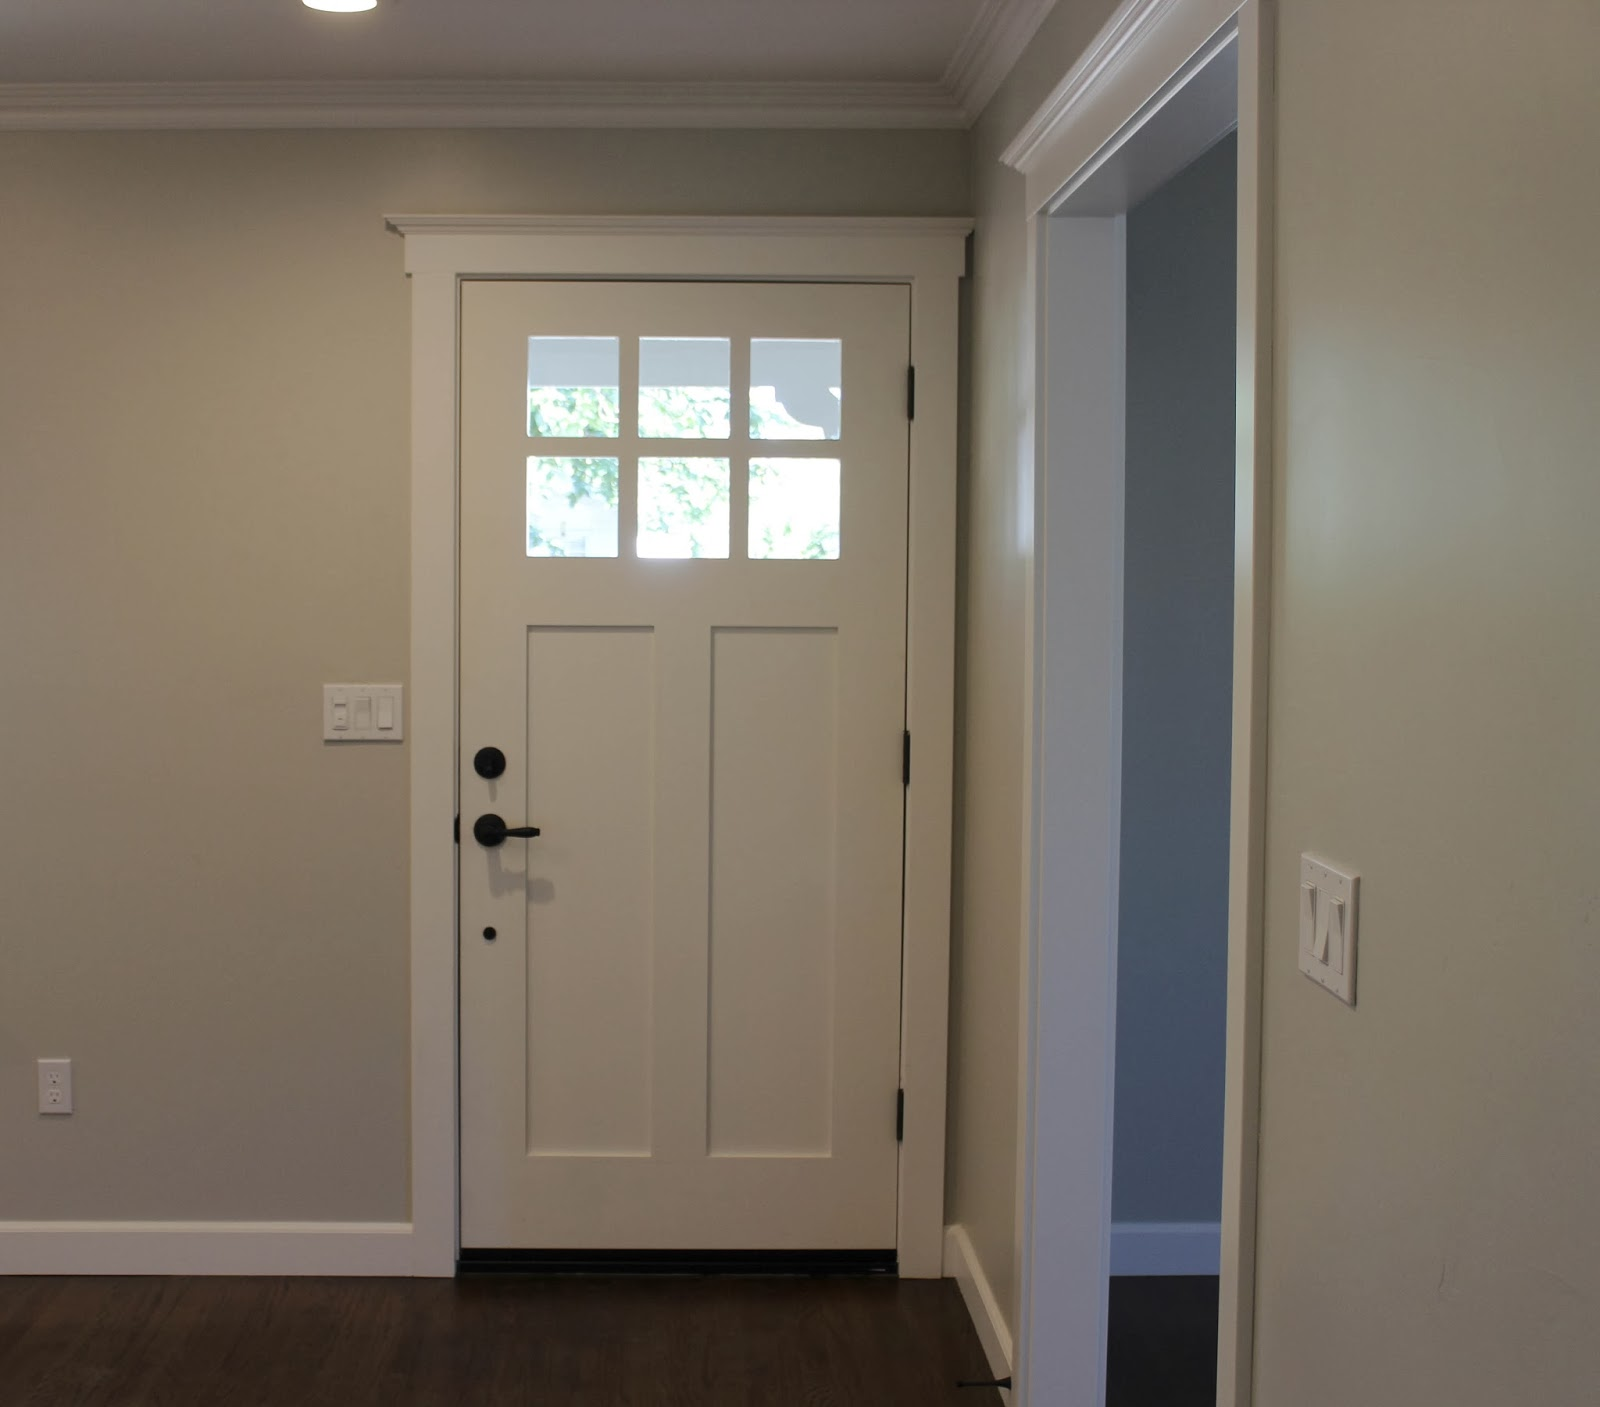 Traditional Door Casing Styles Vs Contemporary Door Casing Styles Homesfeed